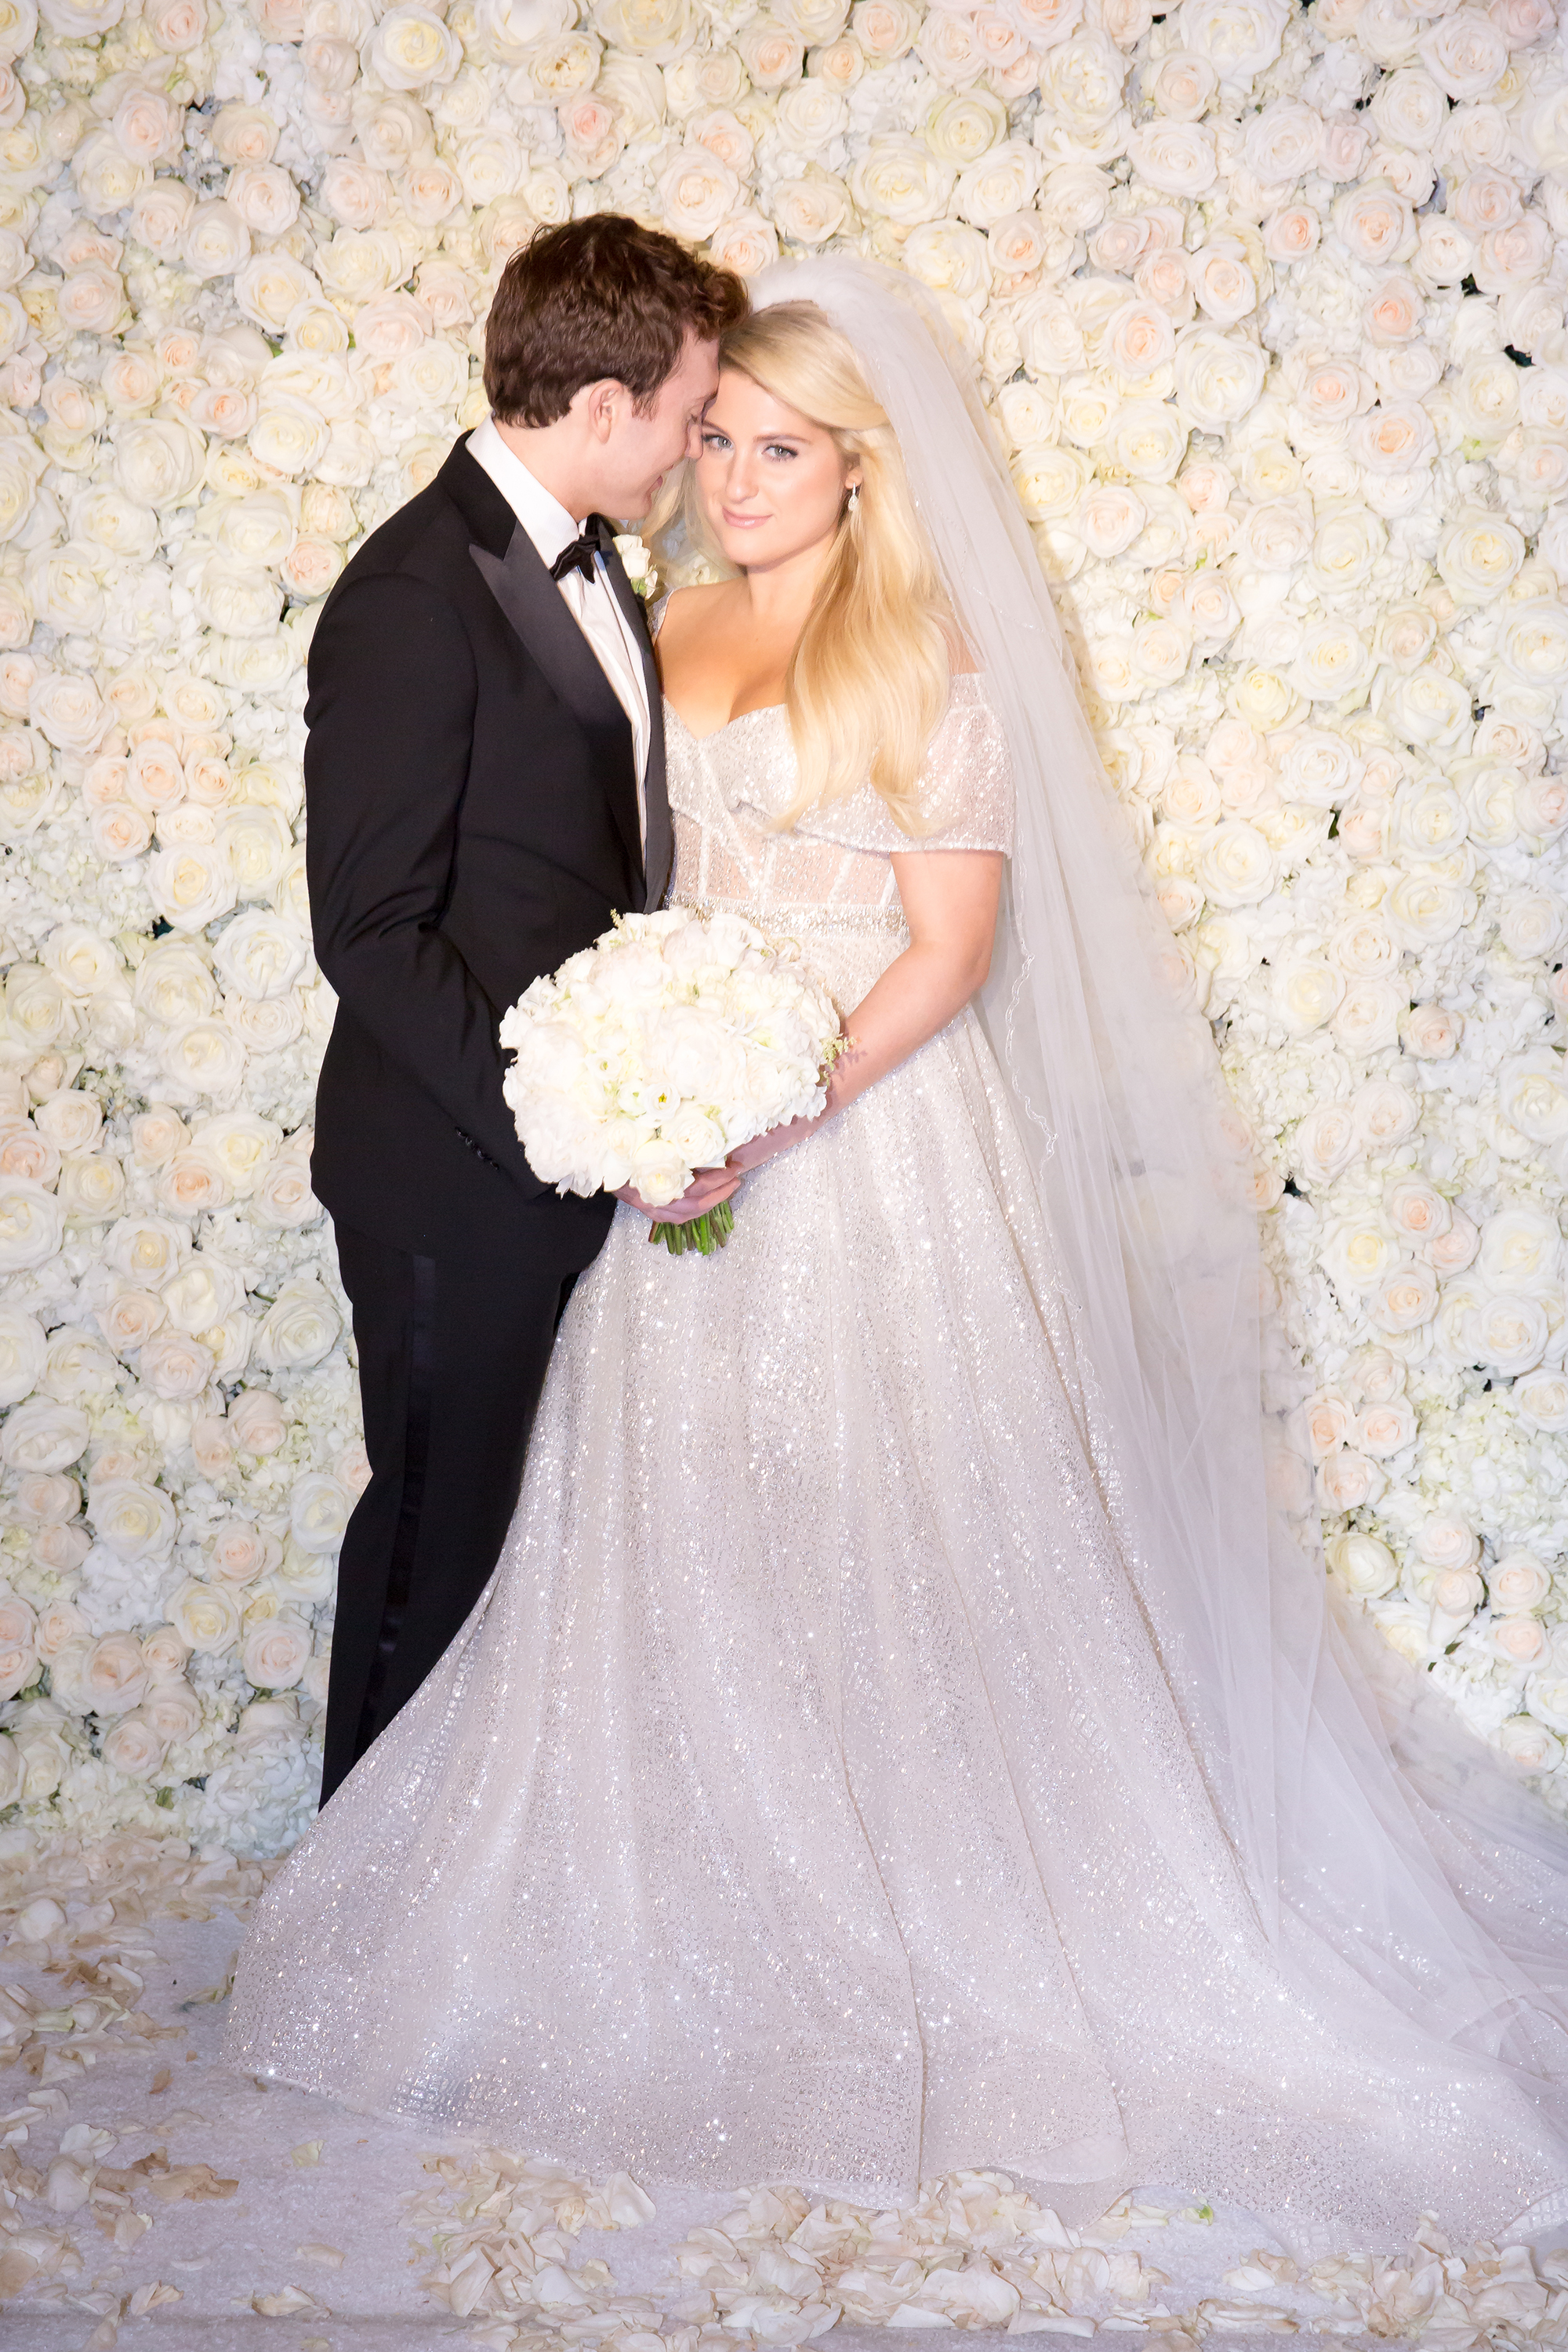 meghan trainor and daryl sabara wedding